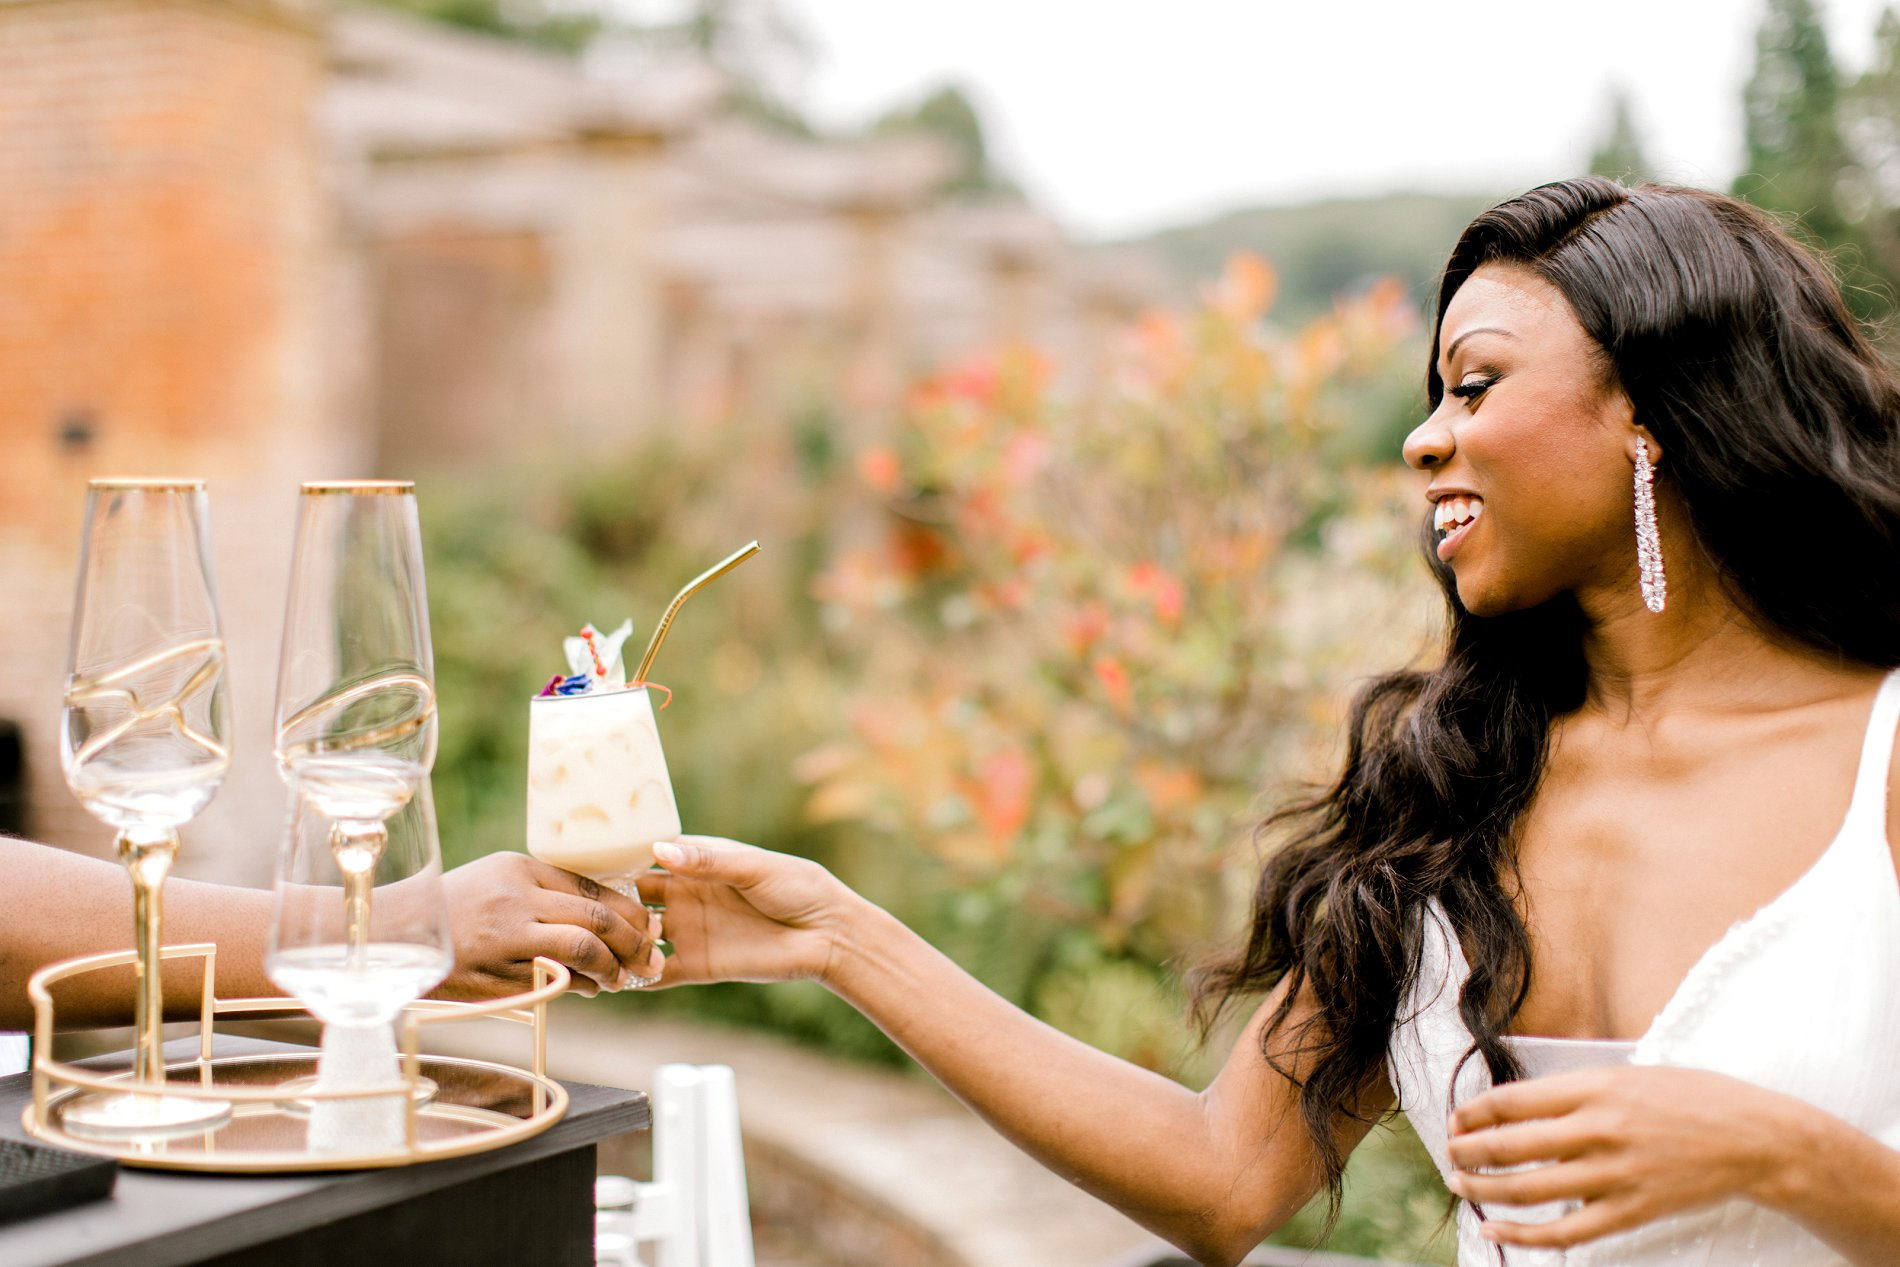 Forever Yours Styled Shoot (c) Camilla J. Hards and Courtney Dee Photography (49)